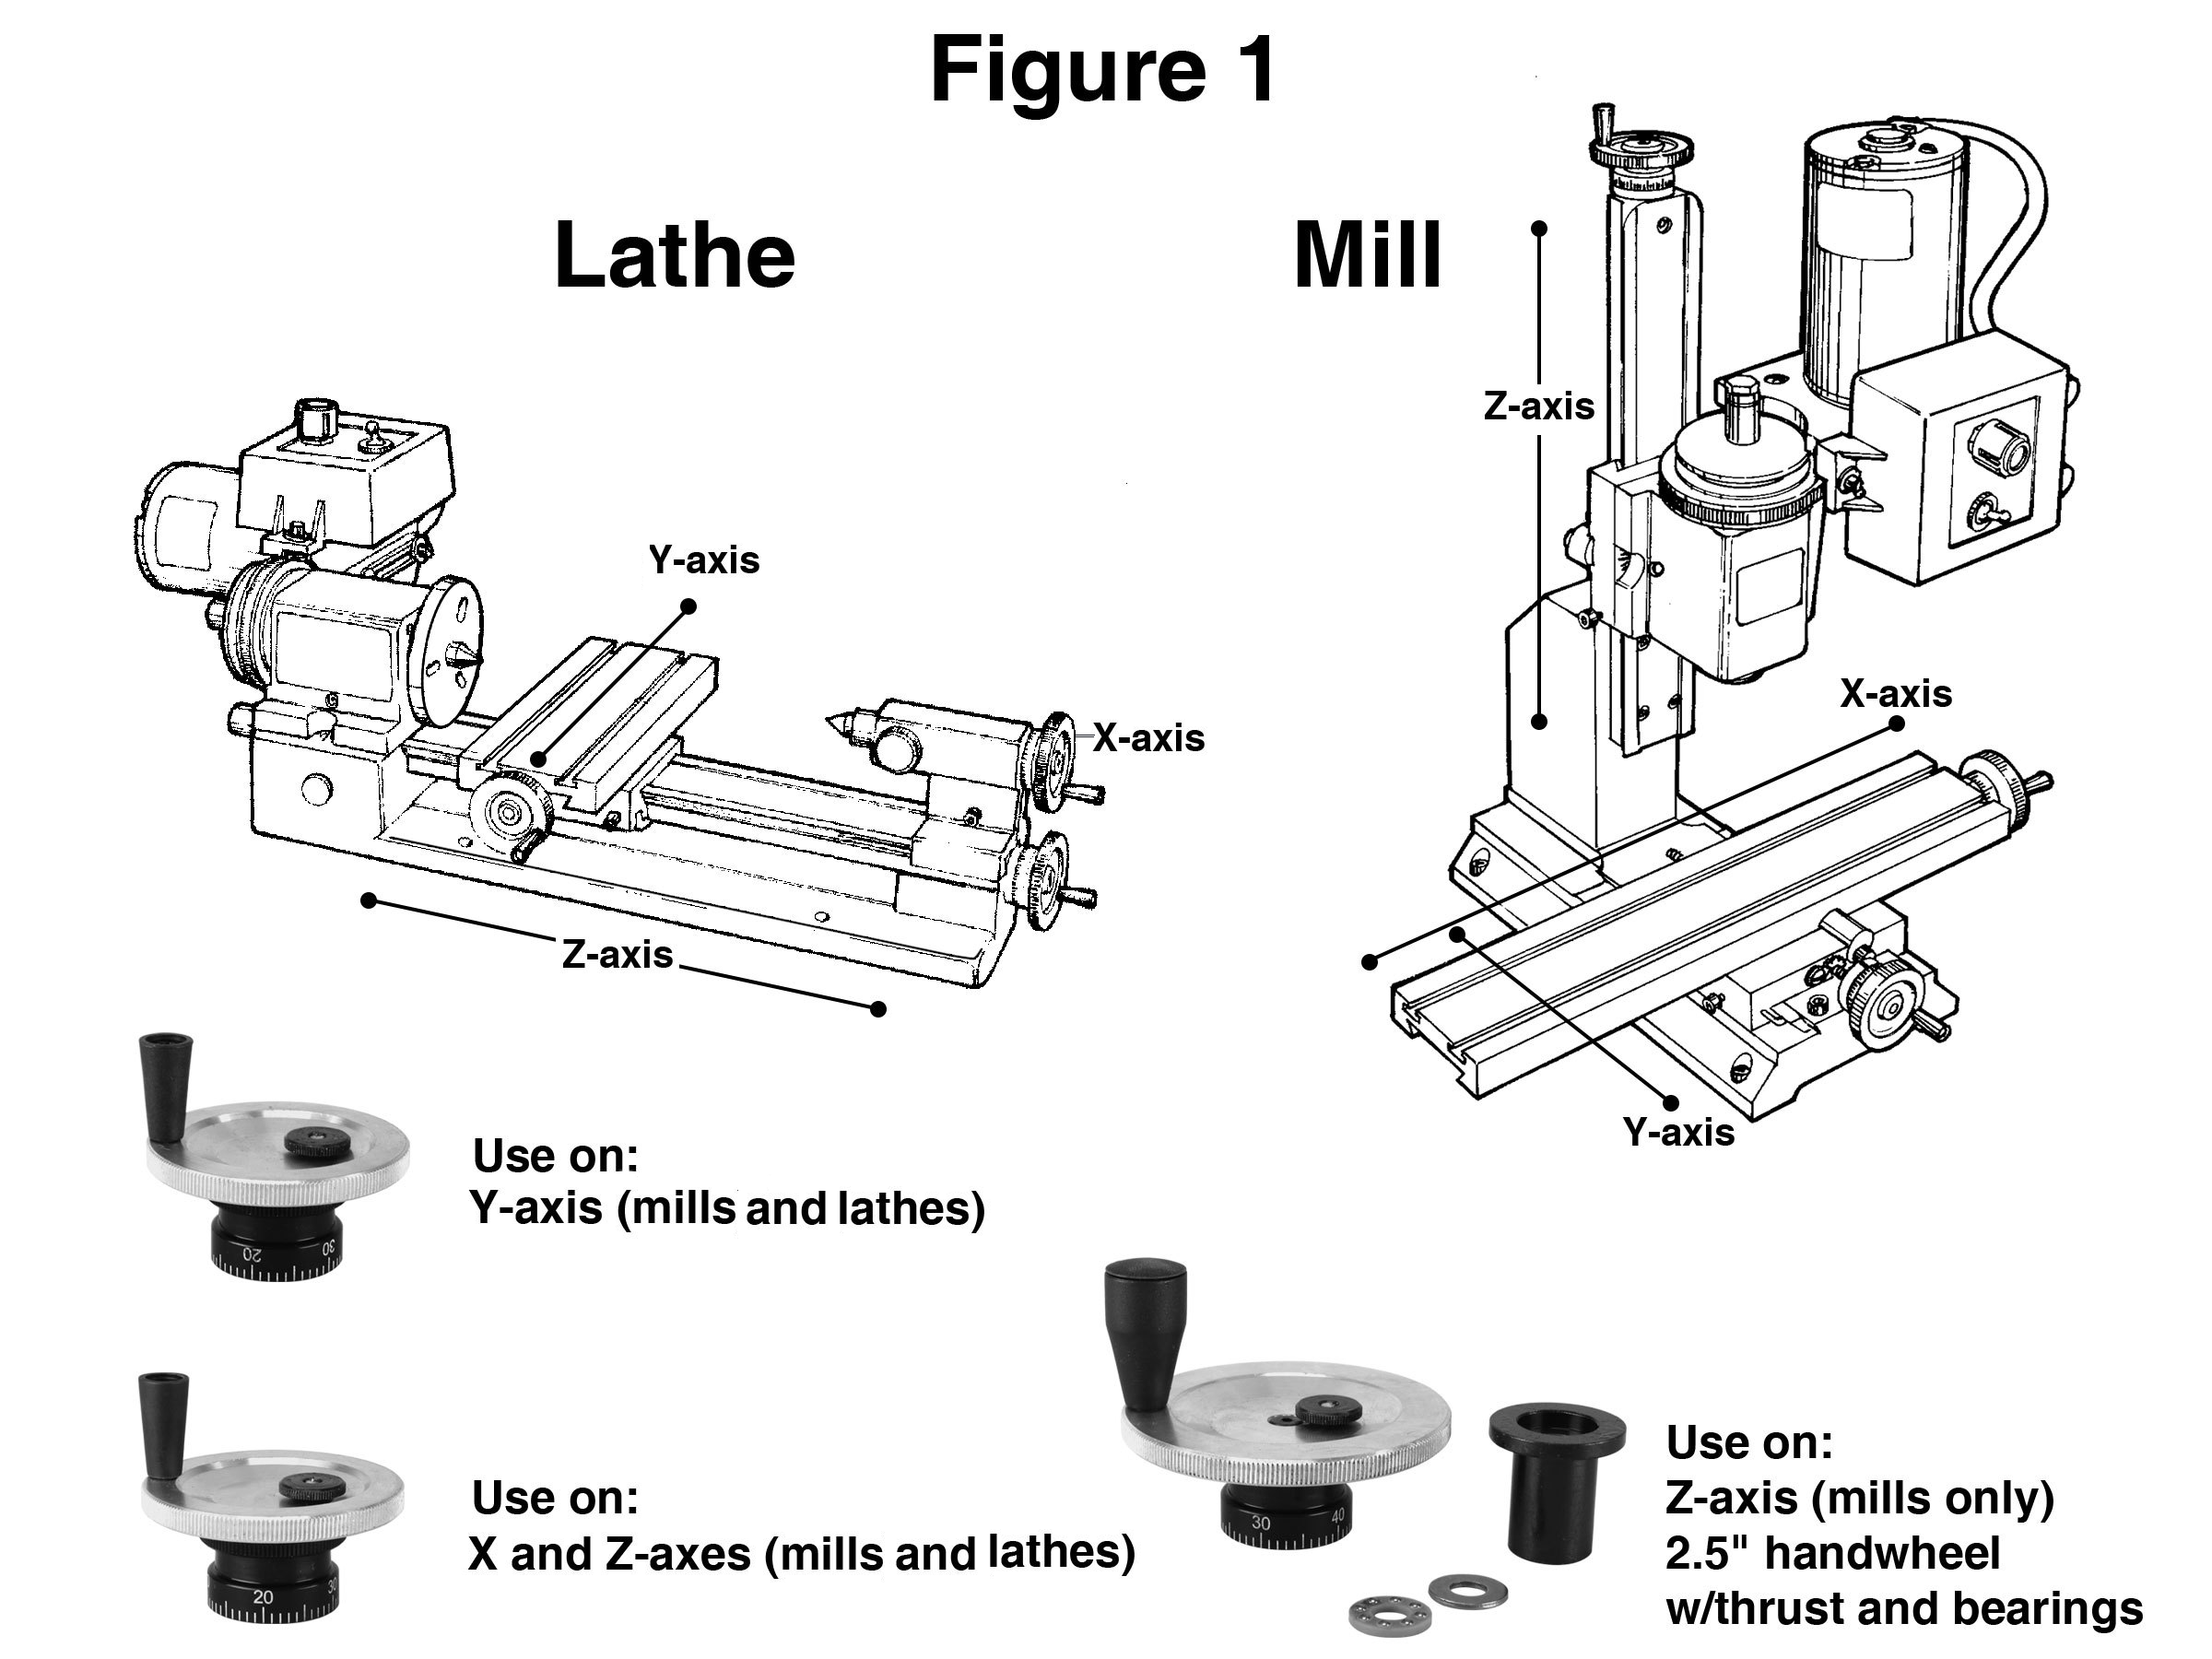 figure 1: the engraved numbers on the handwheels are oriented differently  for ease of reading depending on the axis onto which they are mounted